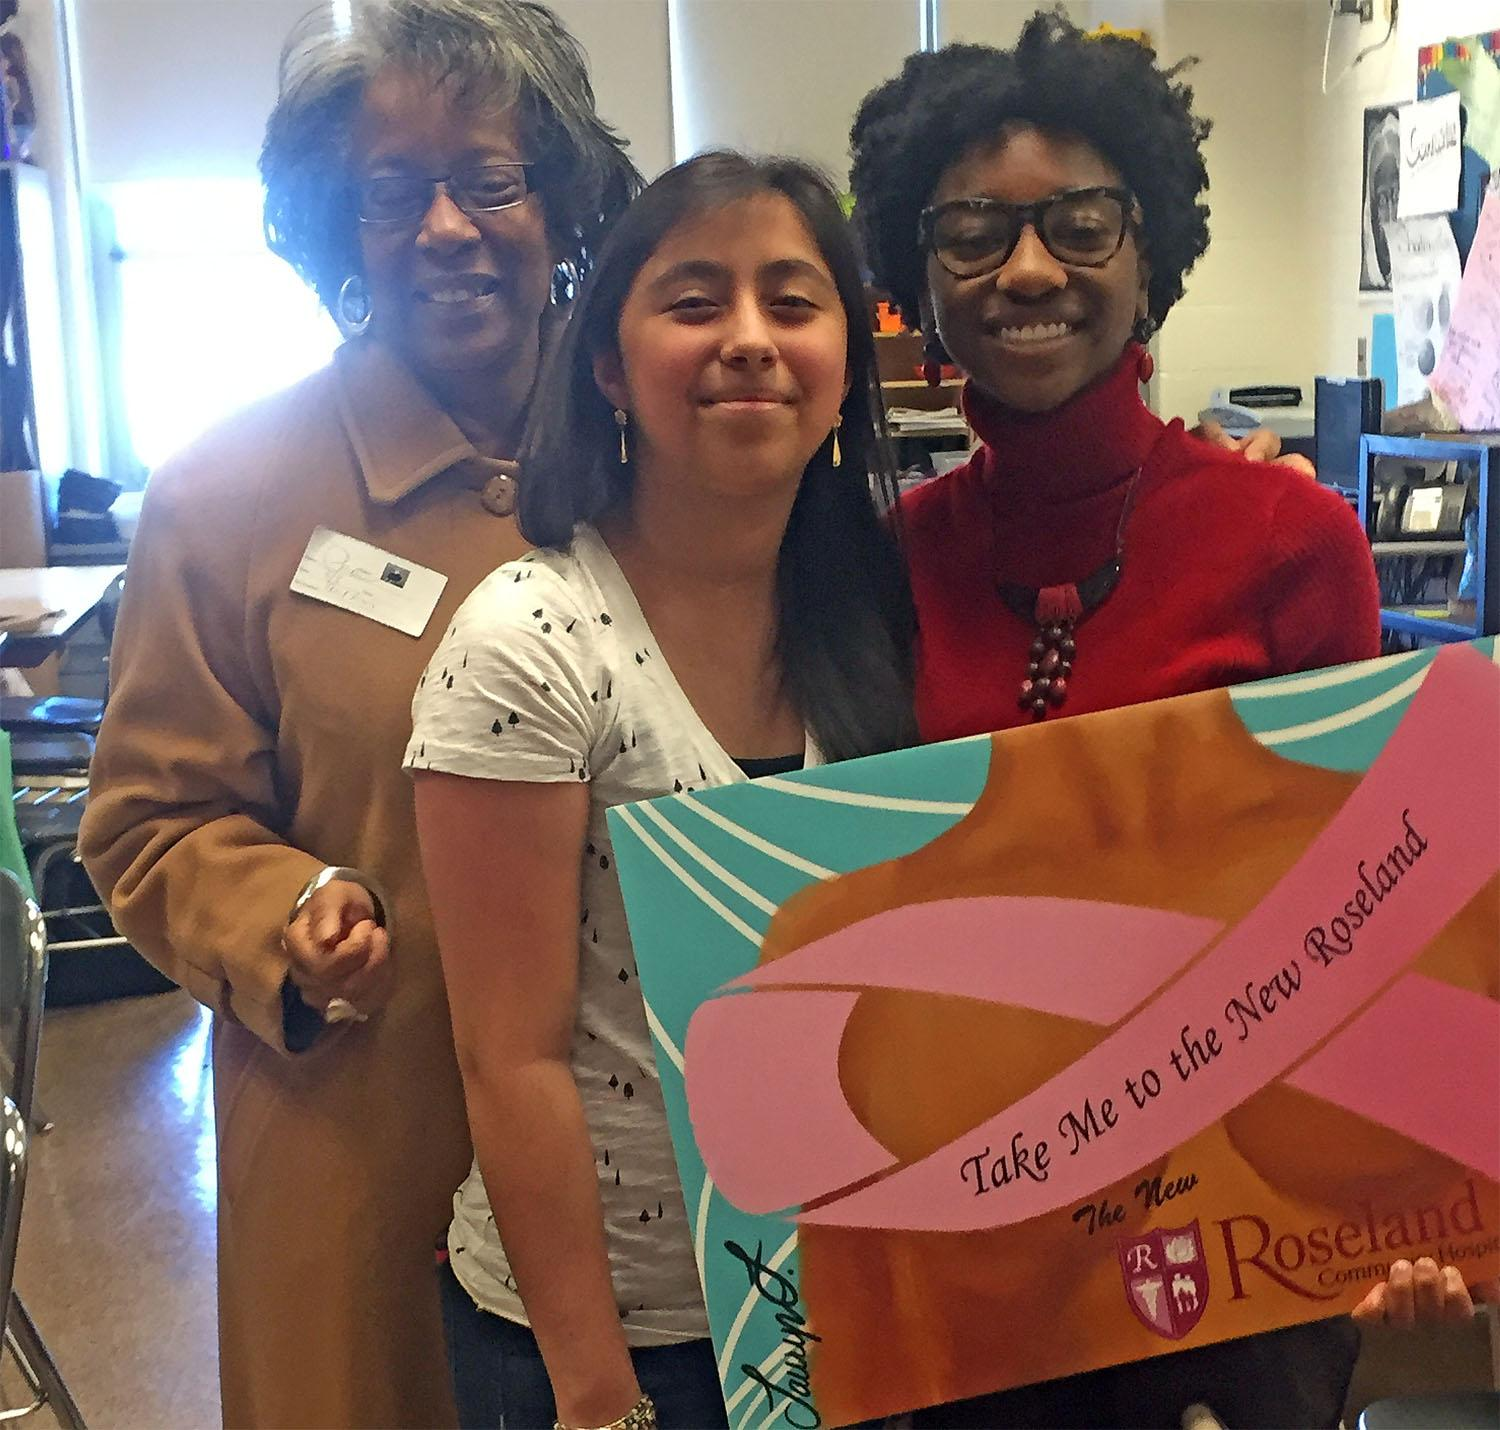 Rhonda Purdue from Roseland Hospital with Lauryn Freeman and Andrea Perez, holding Lauryn's logo.